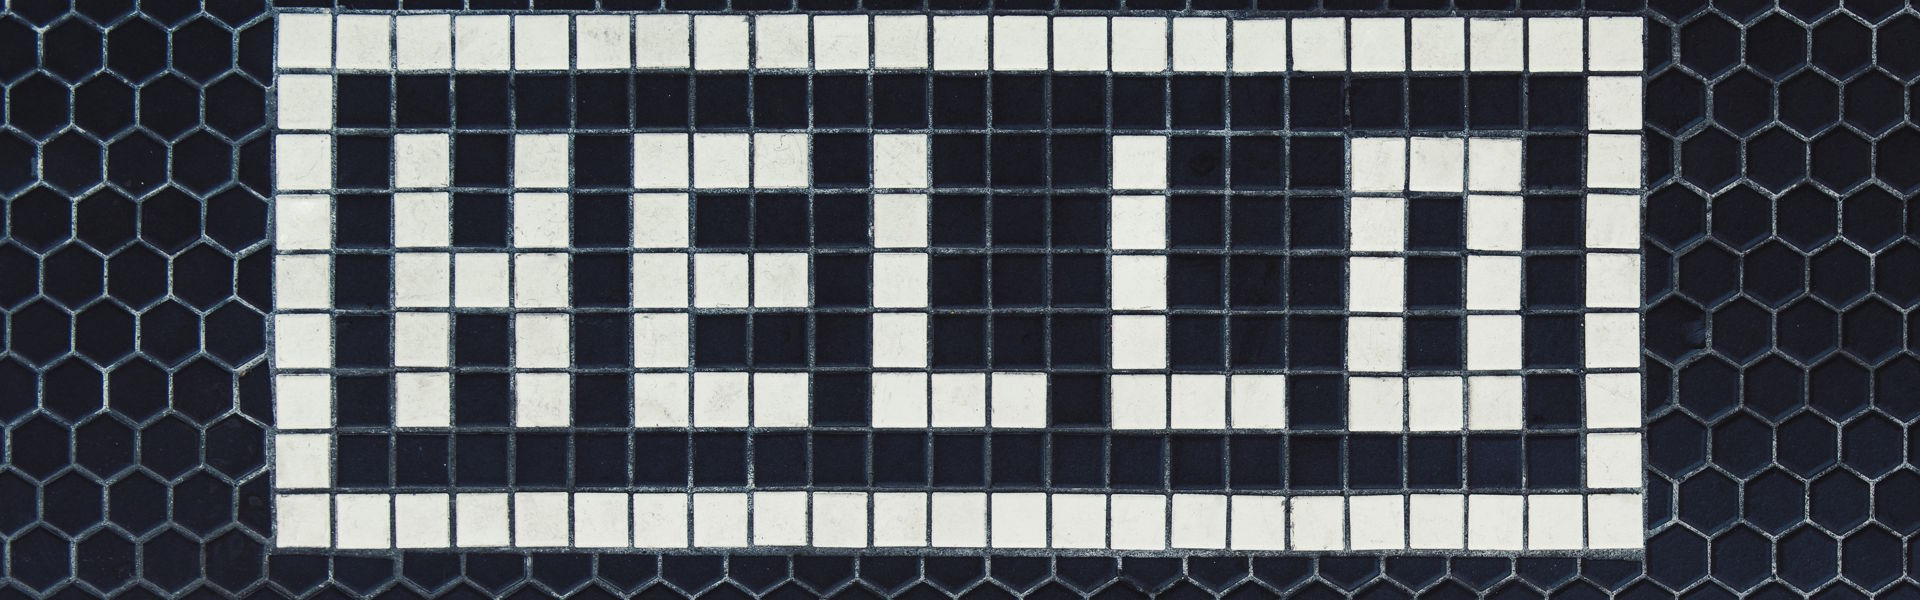 Hello spelled out in Tiles on a Hexagonal Tiled Floor